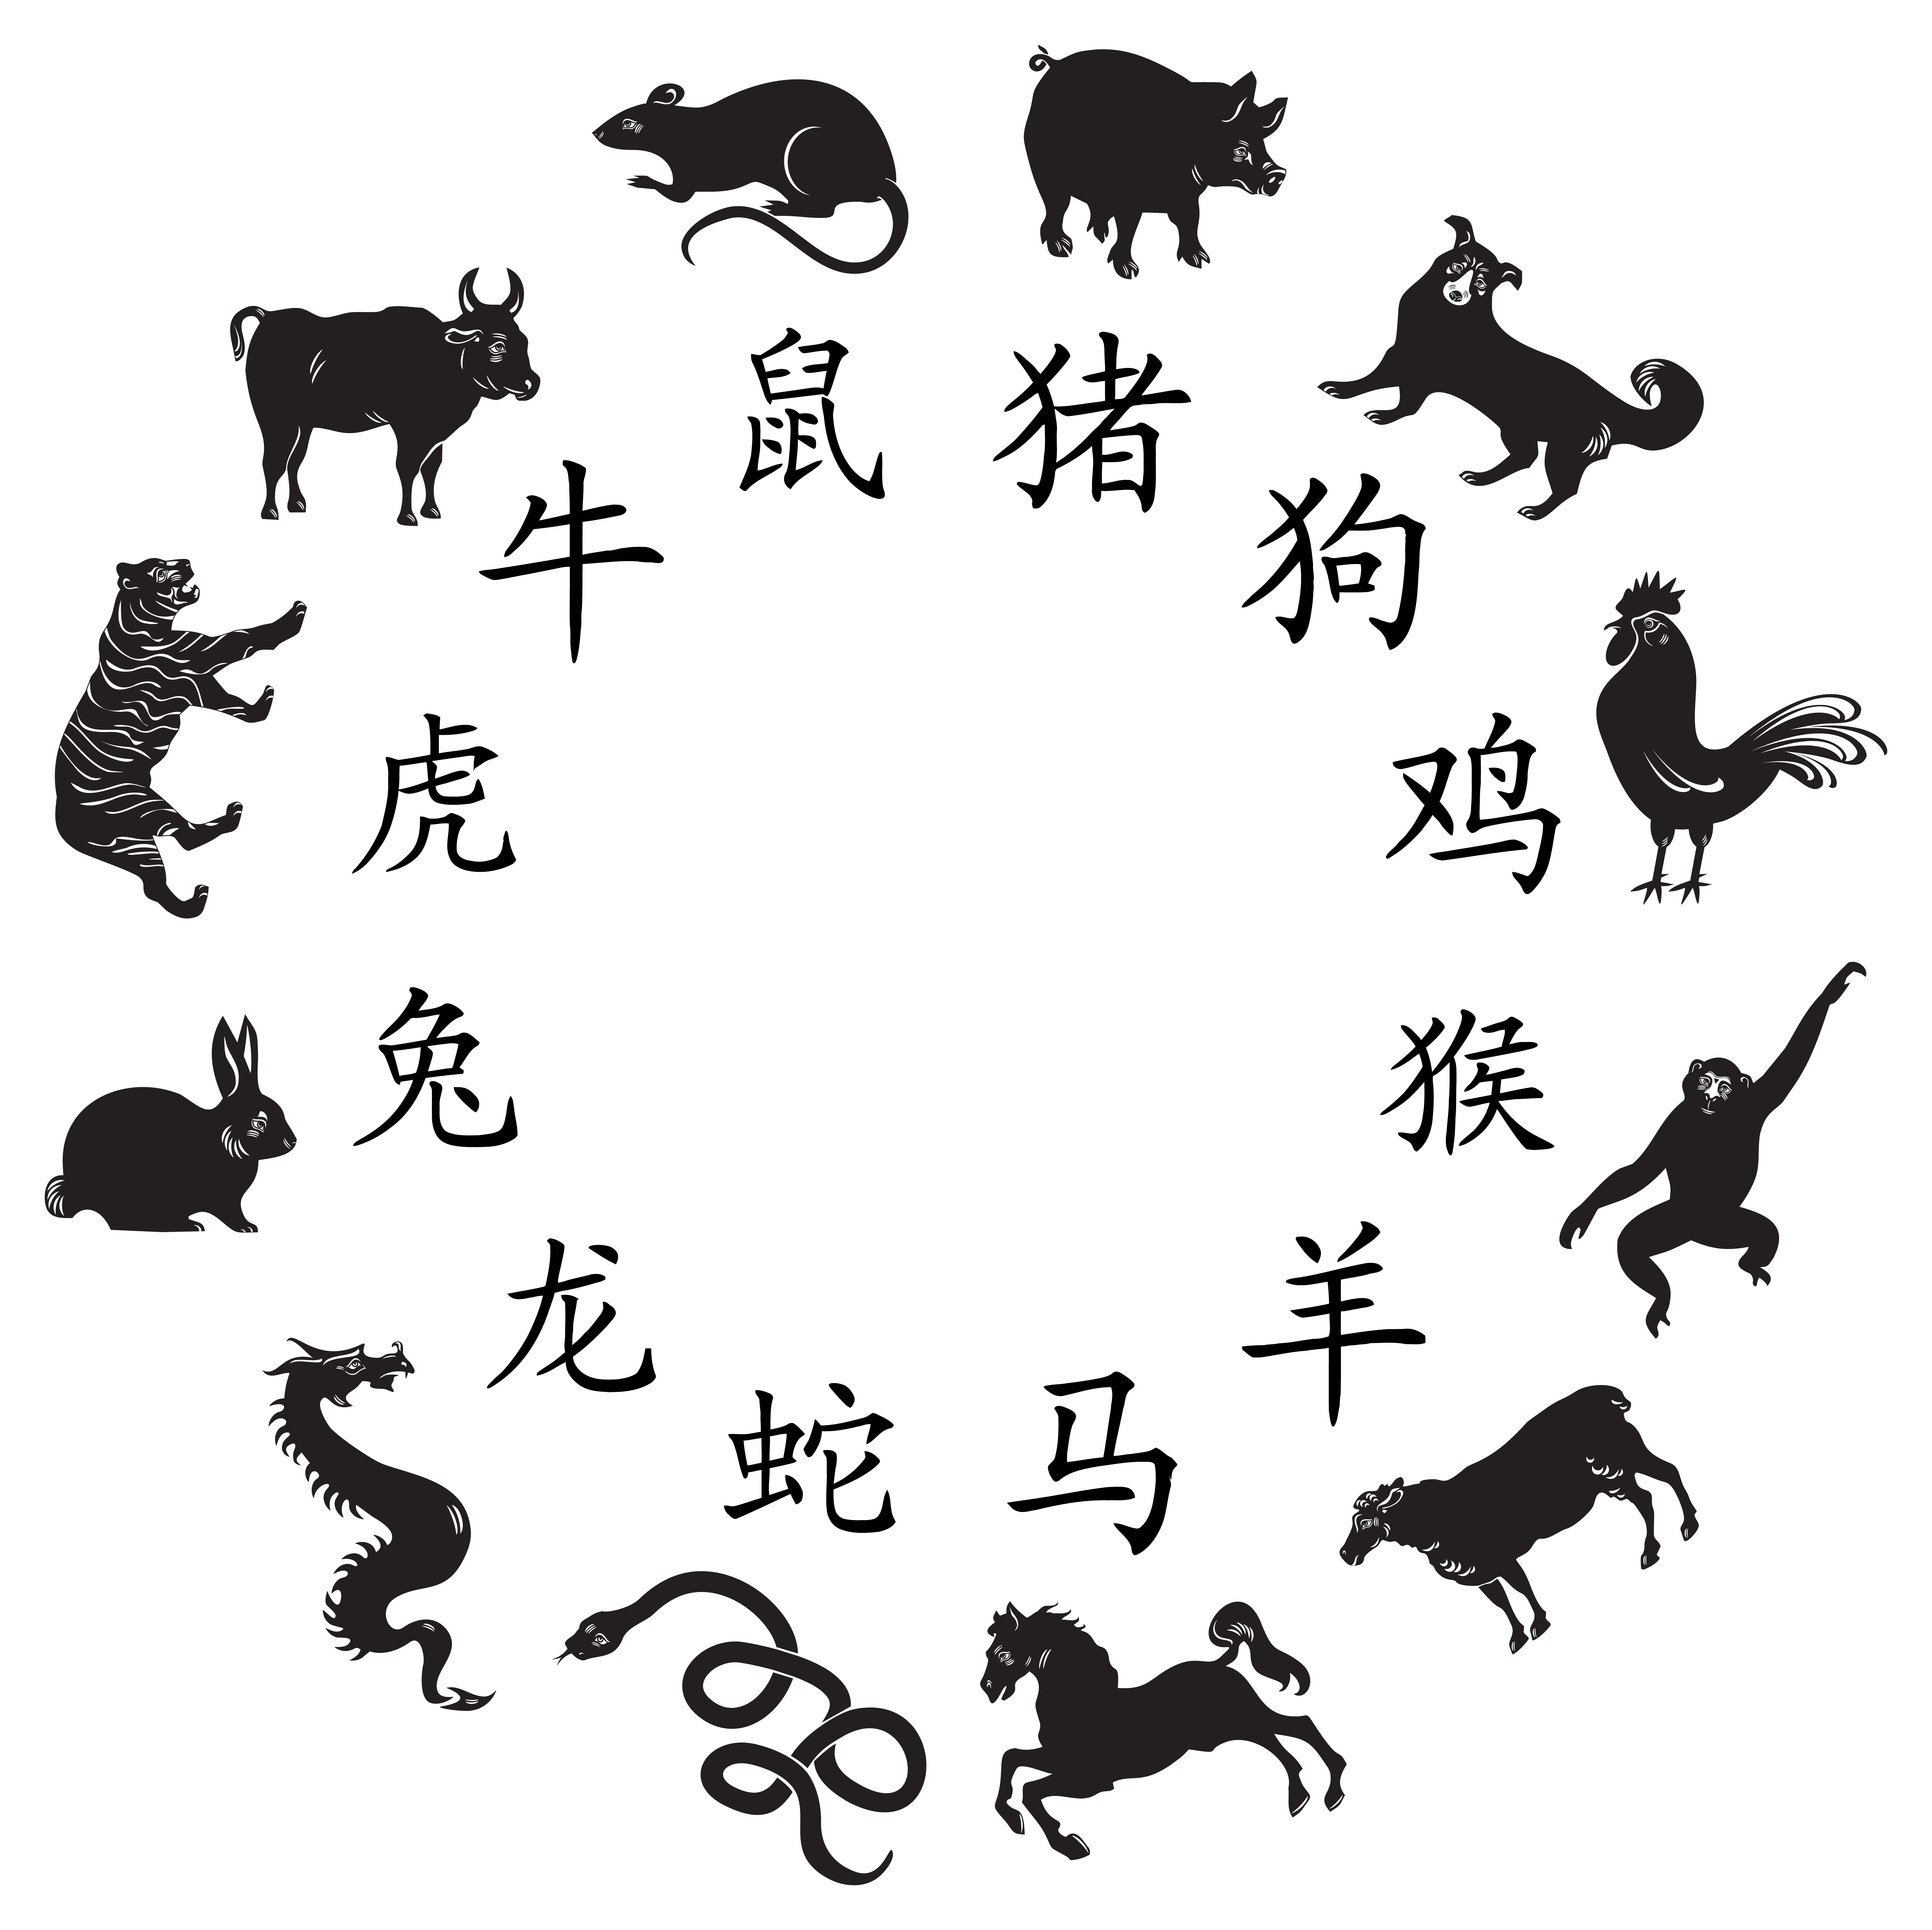 clipart stock Chinese clipart. Transparent zodiac png image